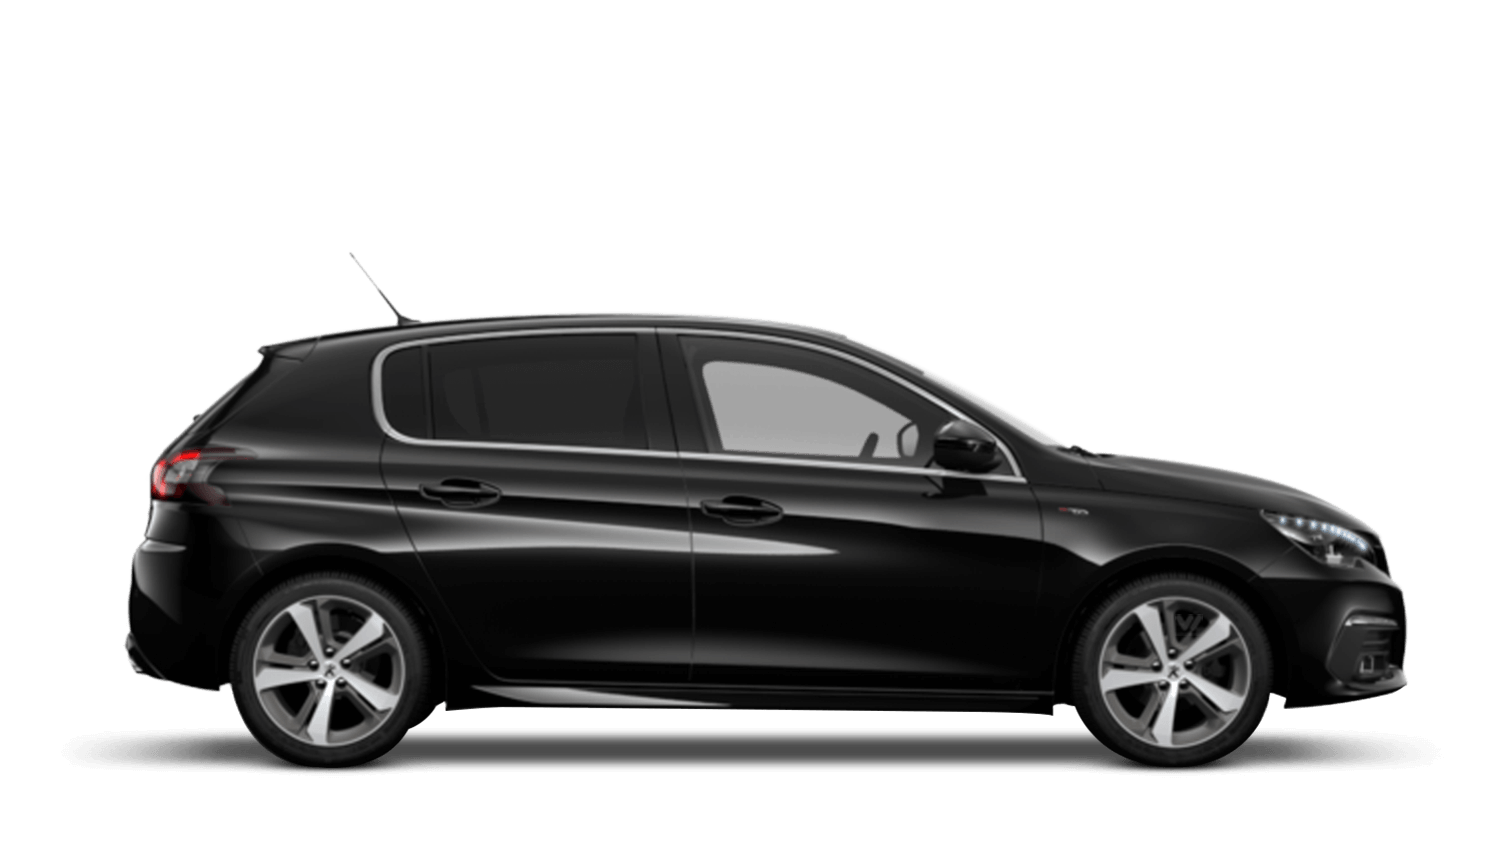 Nera Black New Peugeot 308